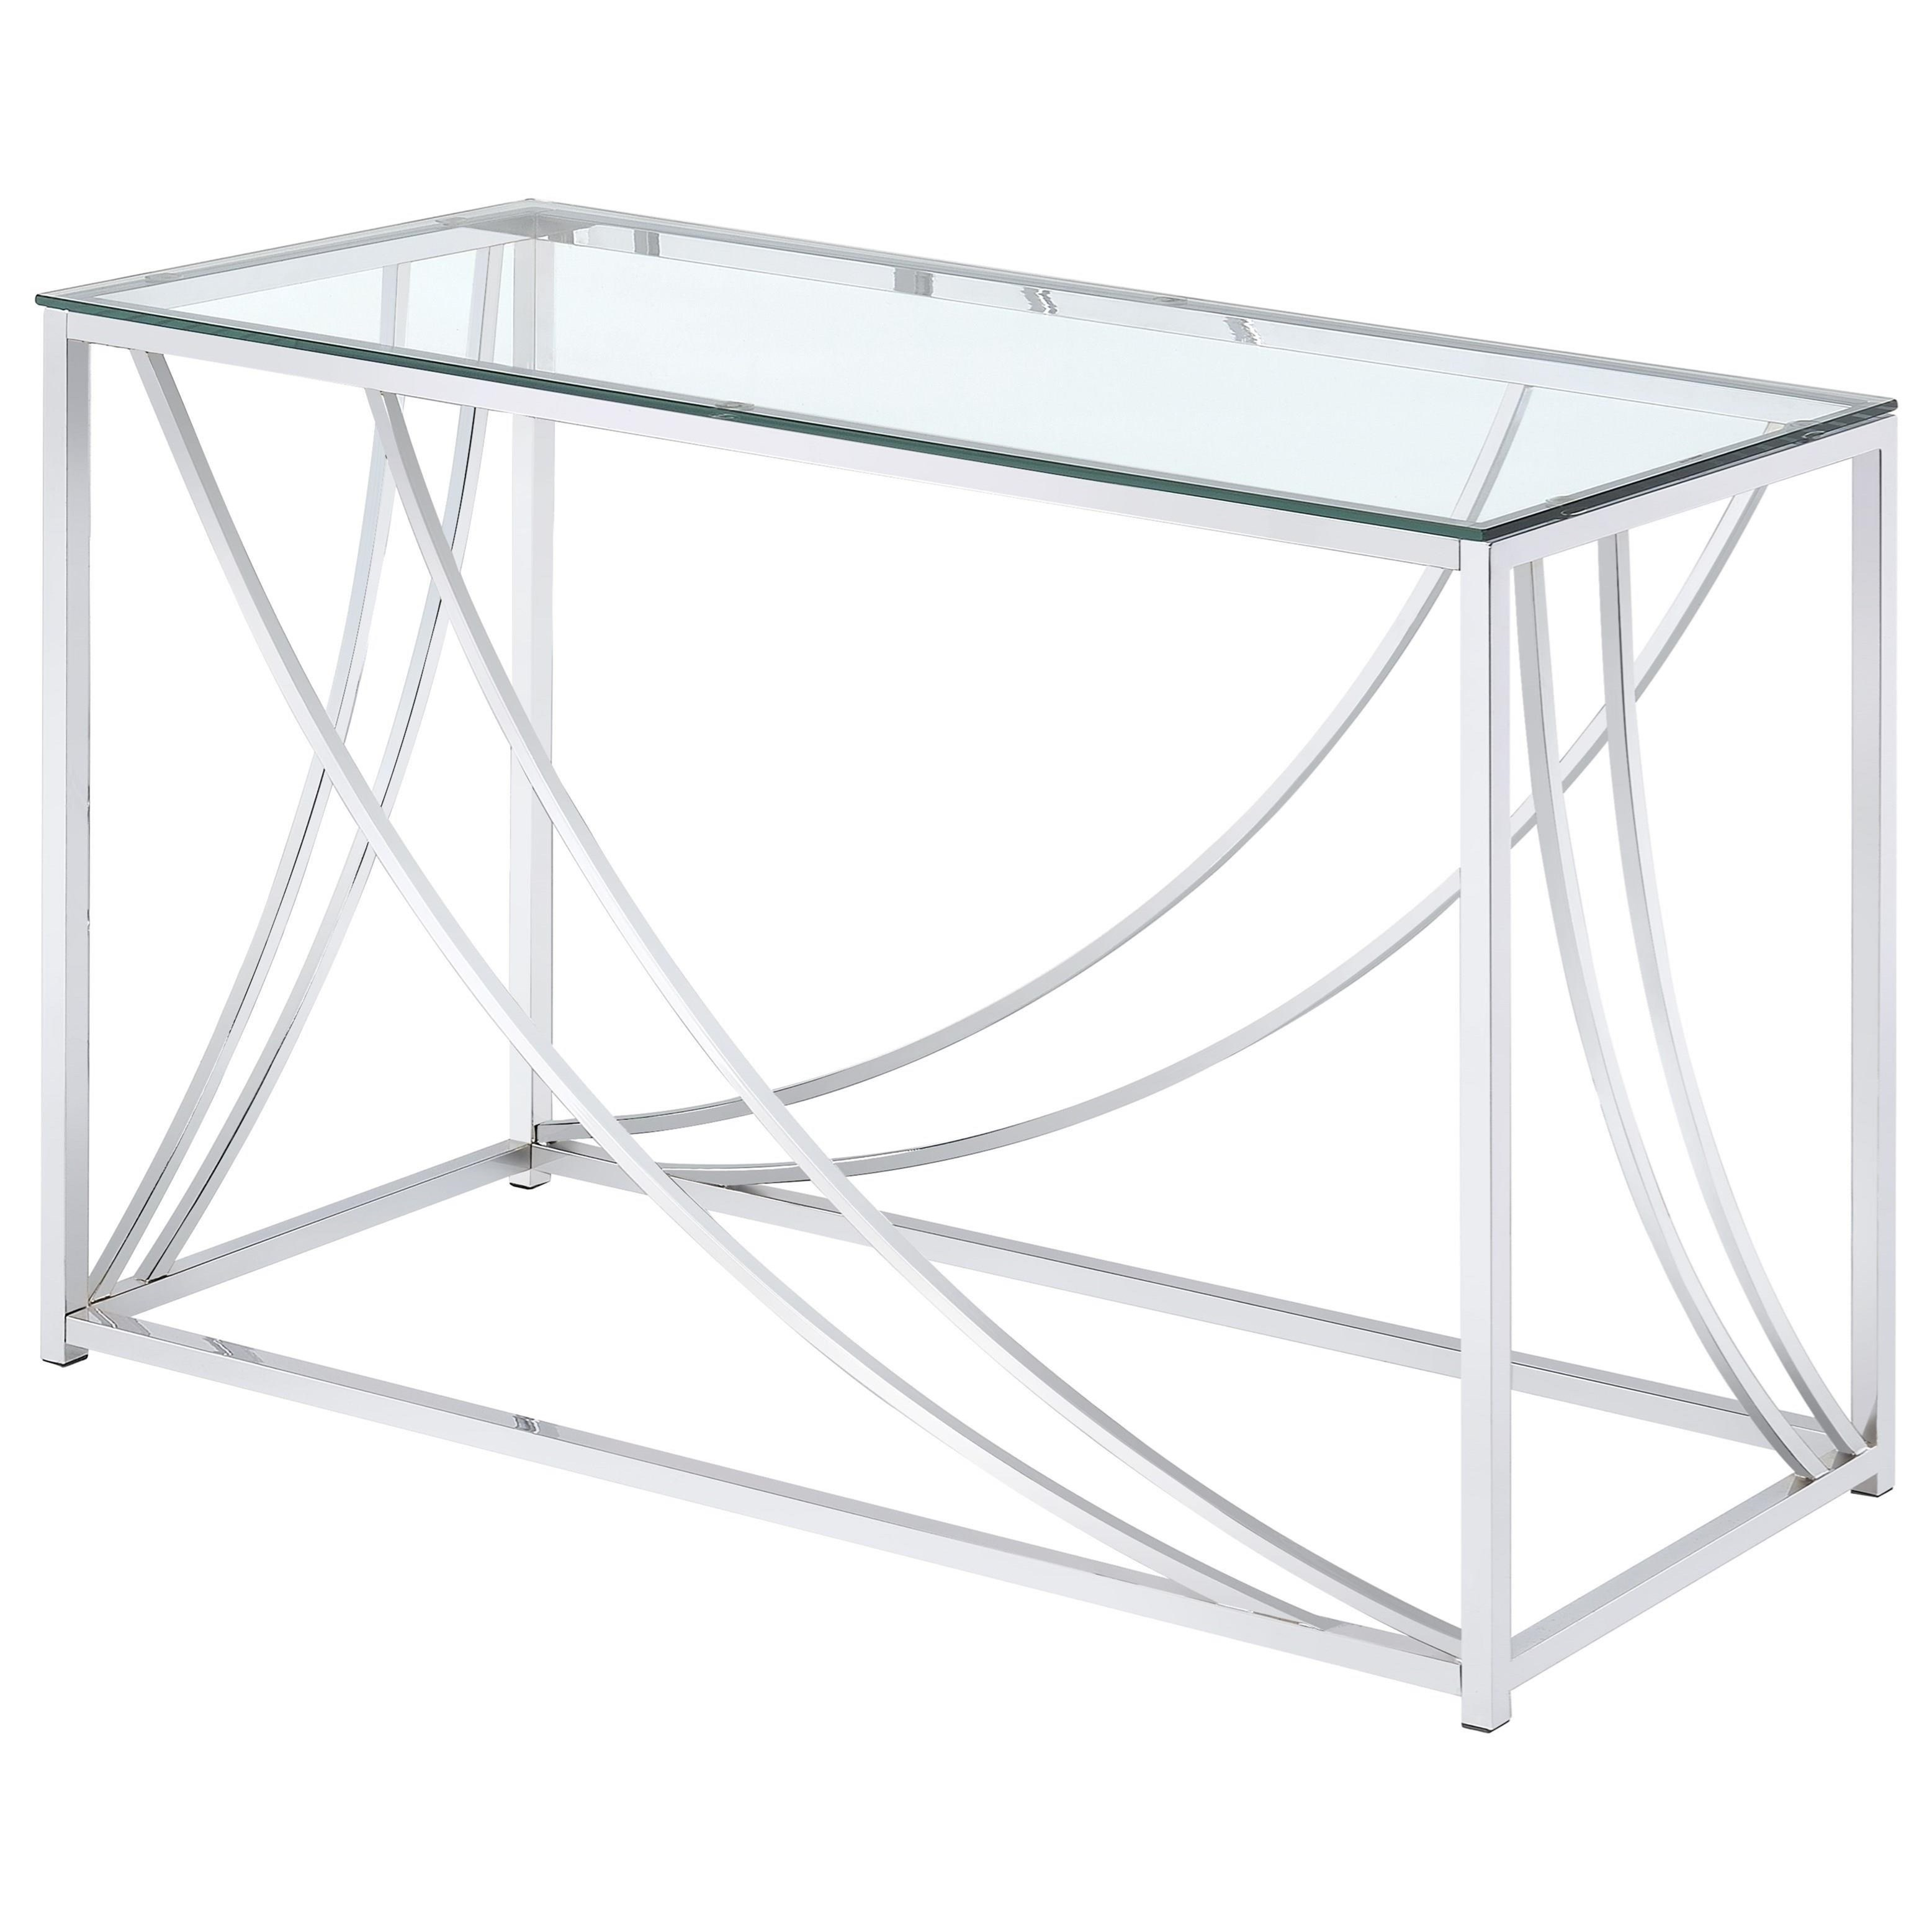 sofa set glass table reviews uk 720490 modern top quality furniture at